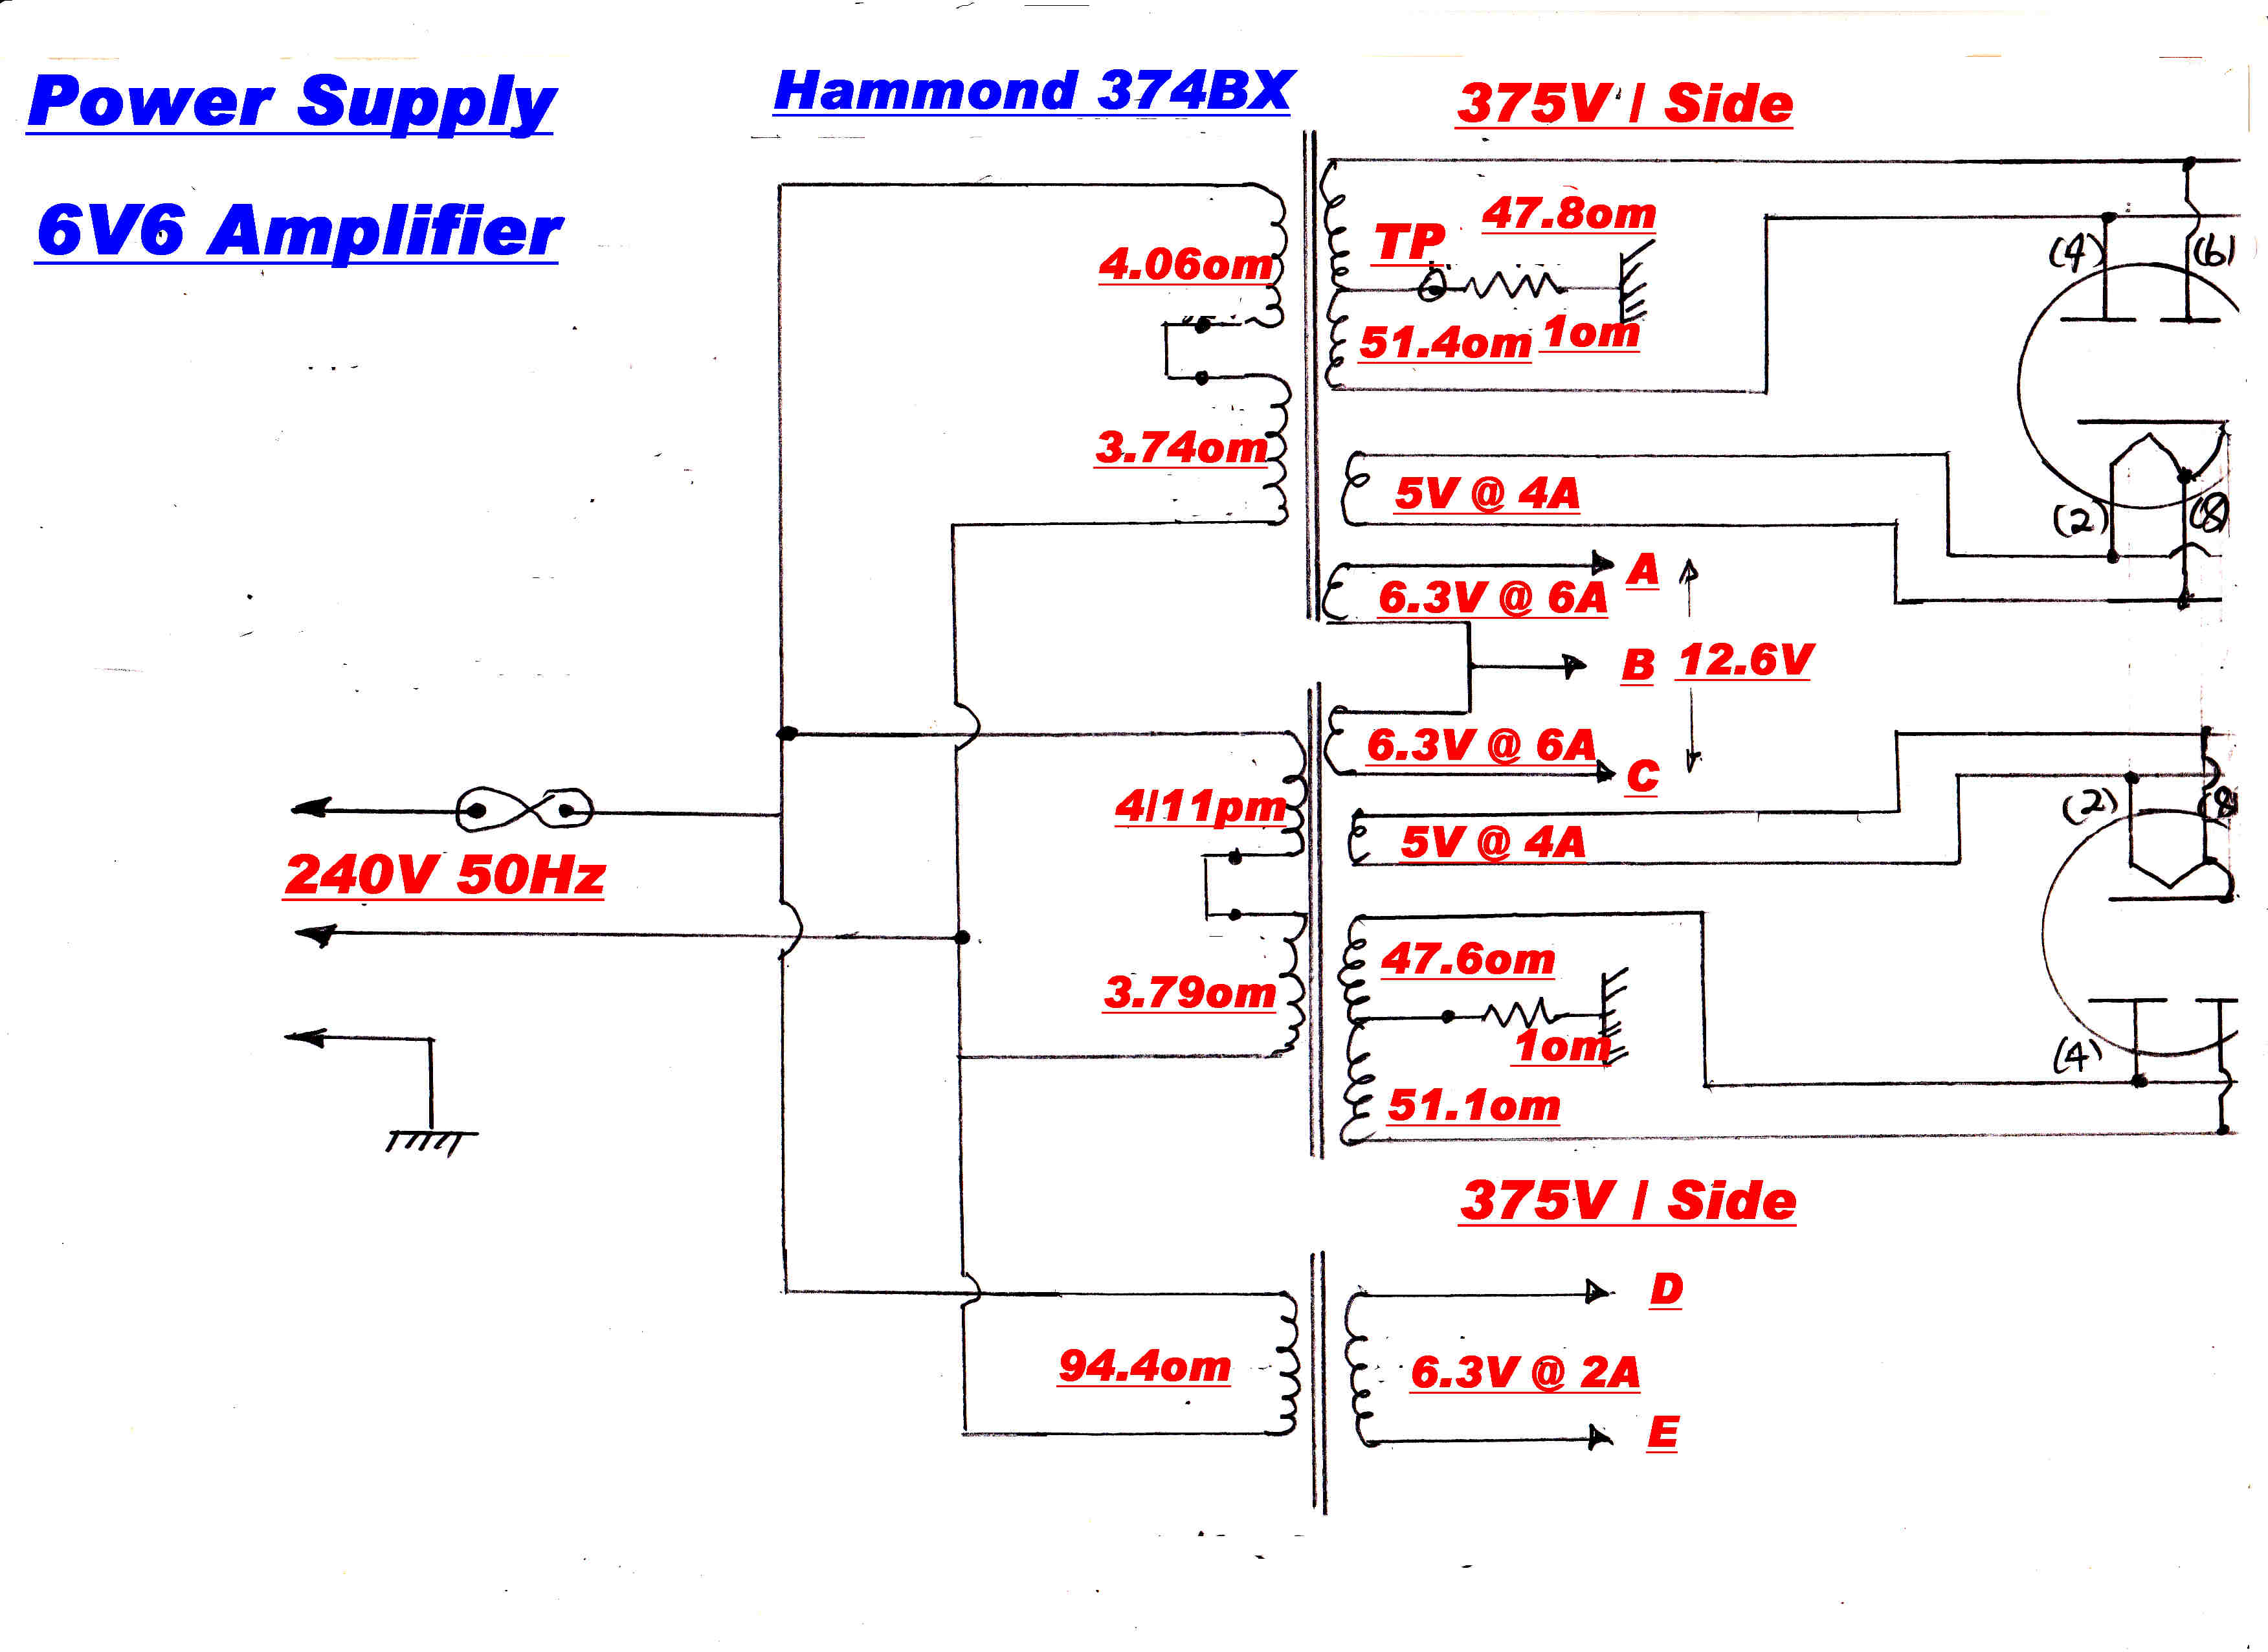 Amplitudemodulation Block Diagram For Power Supply Is Given Below The Circuit Of Vacuum Tube Amplifier Shown